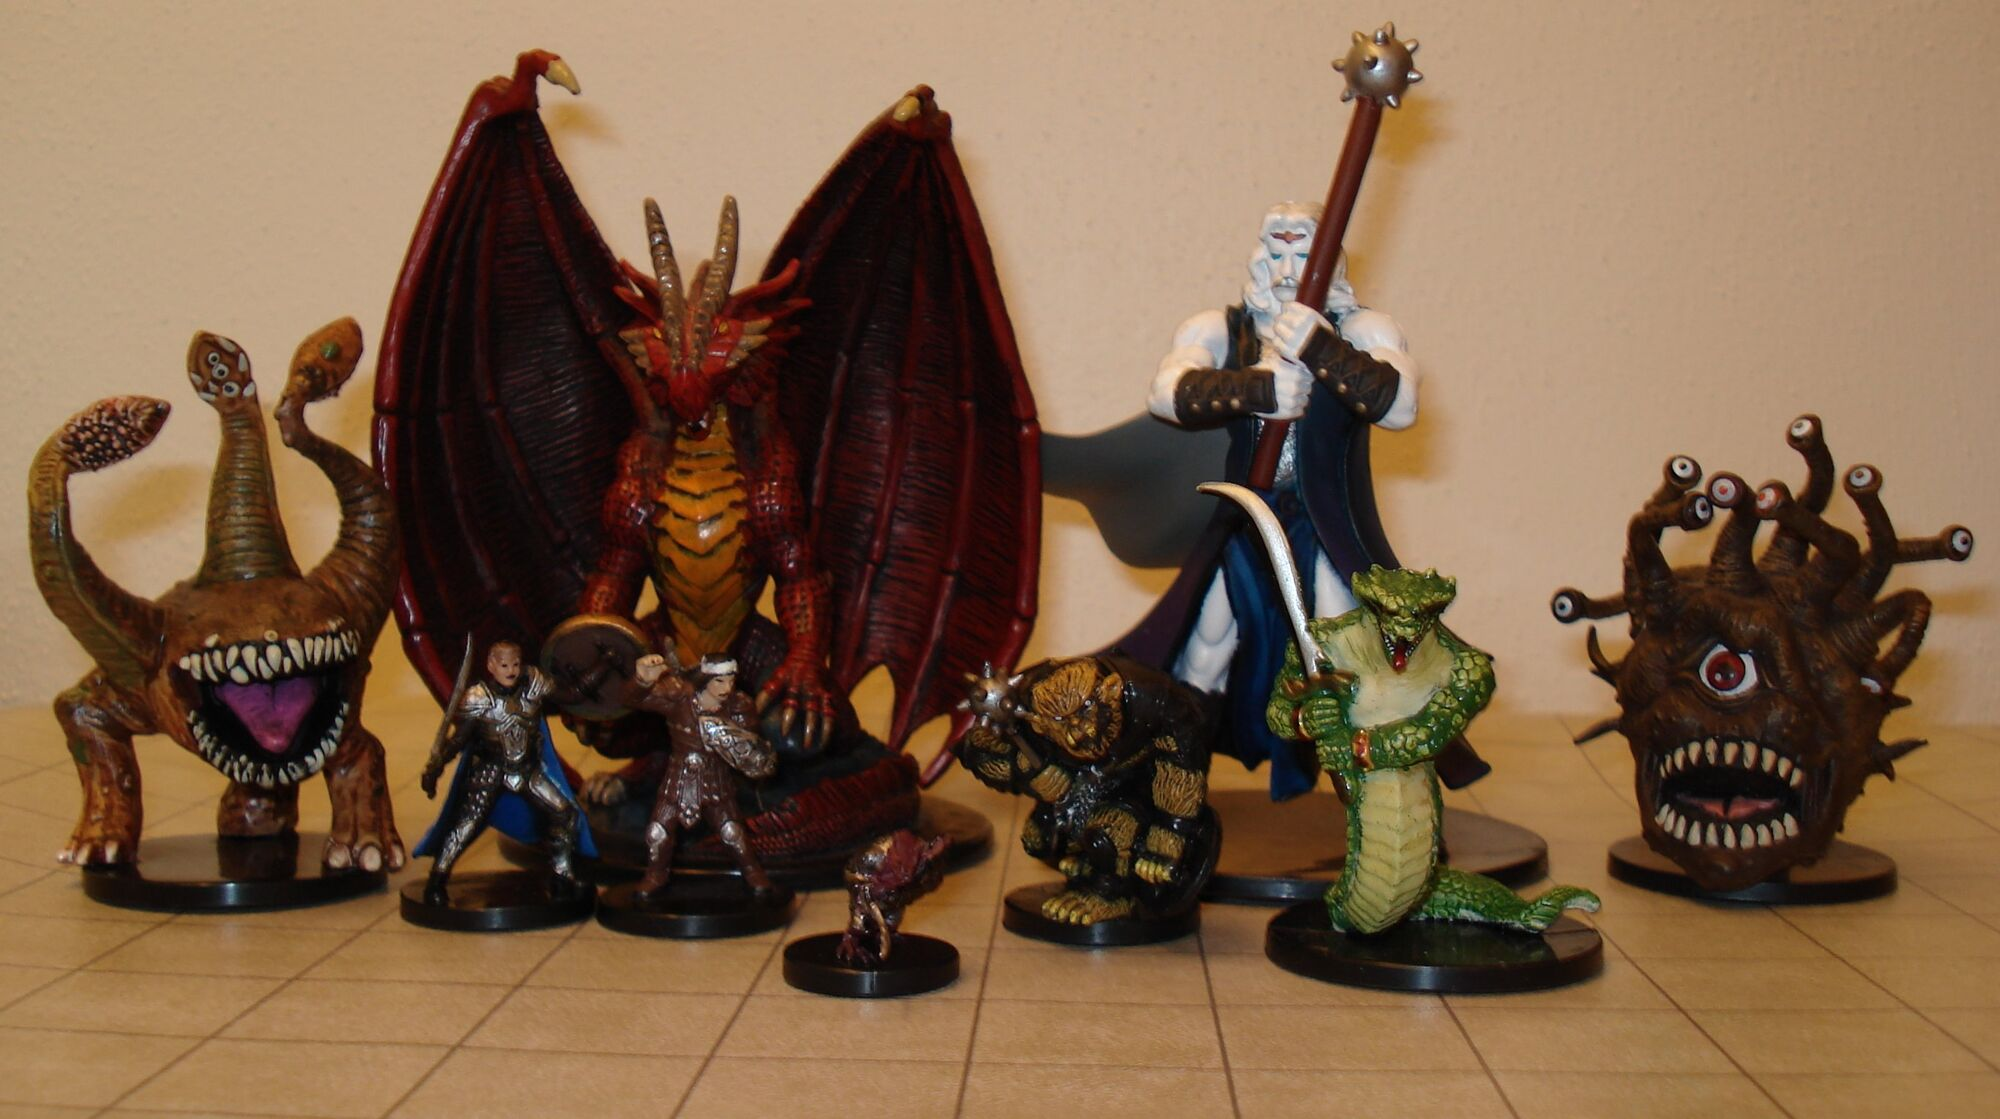 Image - Dungeons & Dragons Miniatures 2.jpg Annex Fandom powered by Wikia